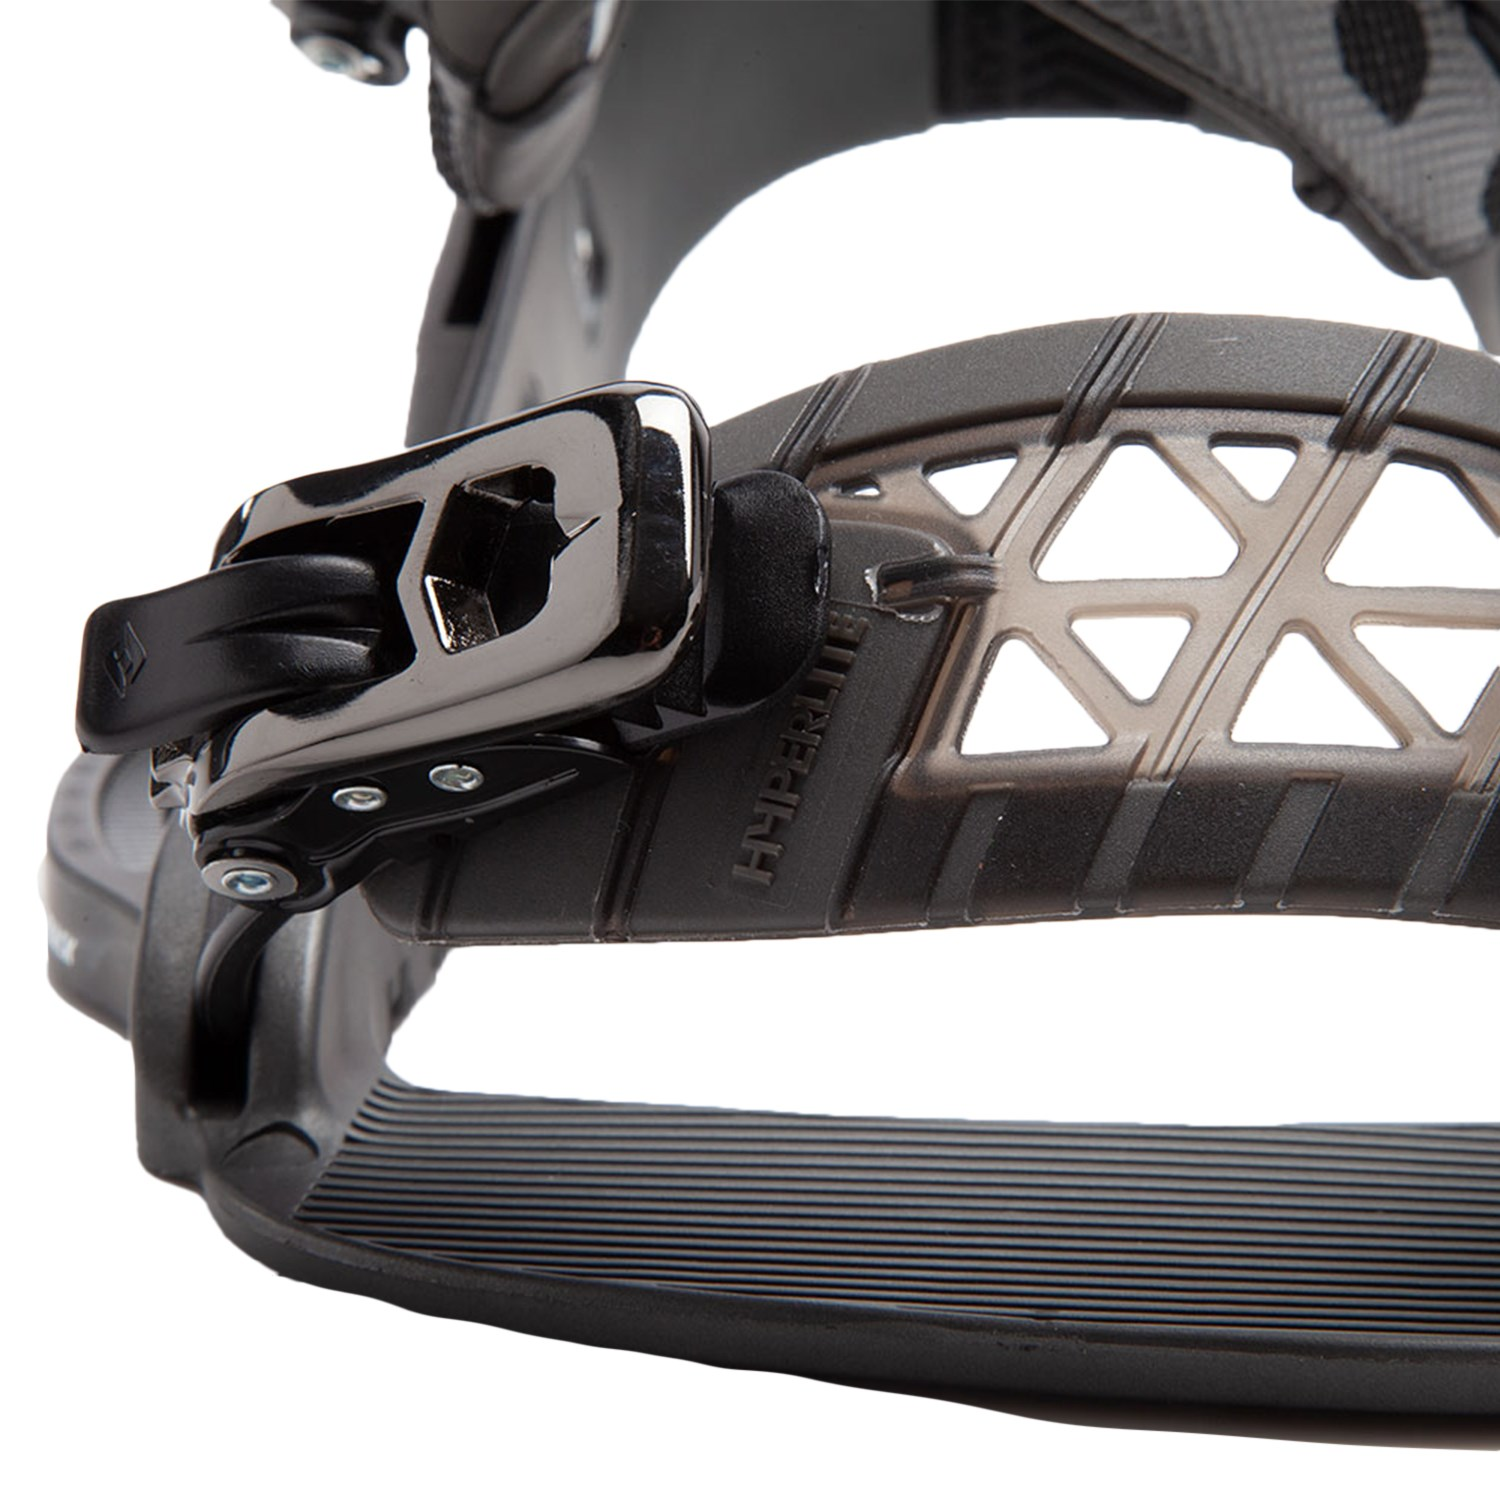 2021 Hyperlite System Lowback Wakeboard Chassis